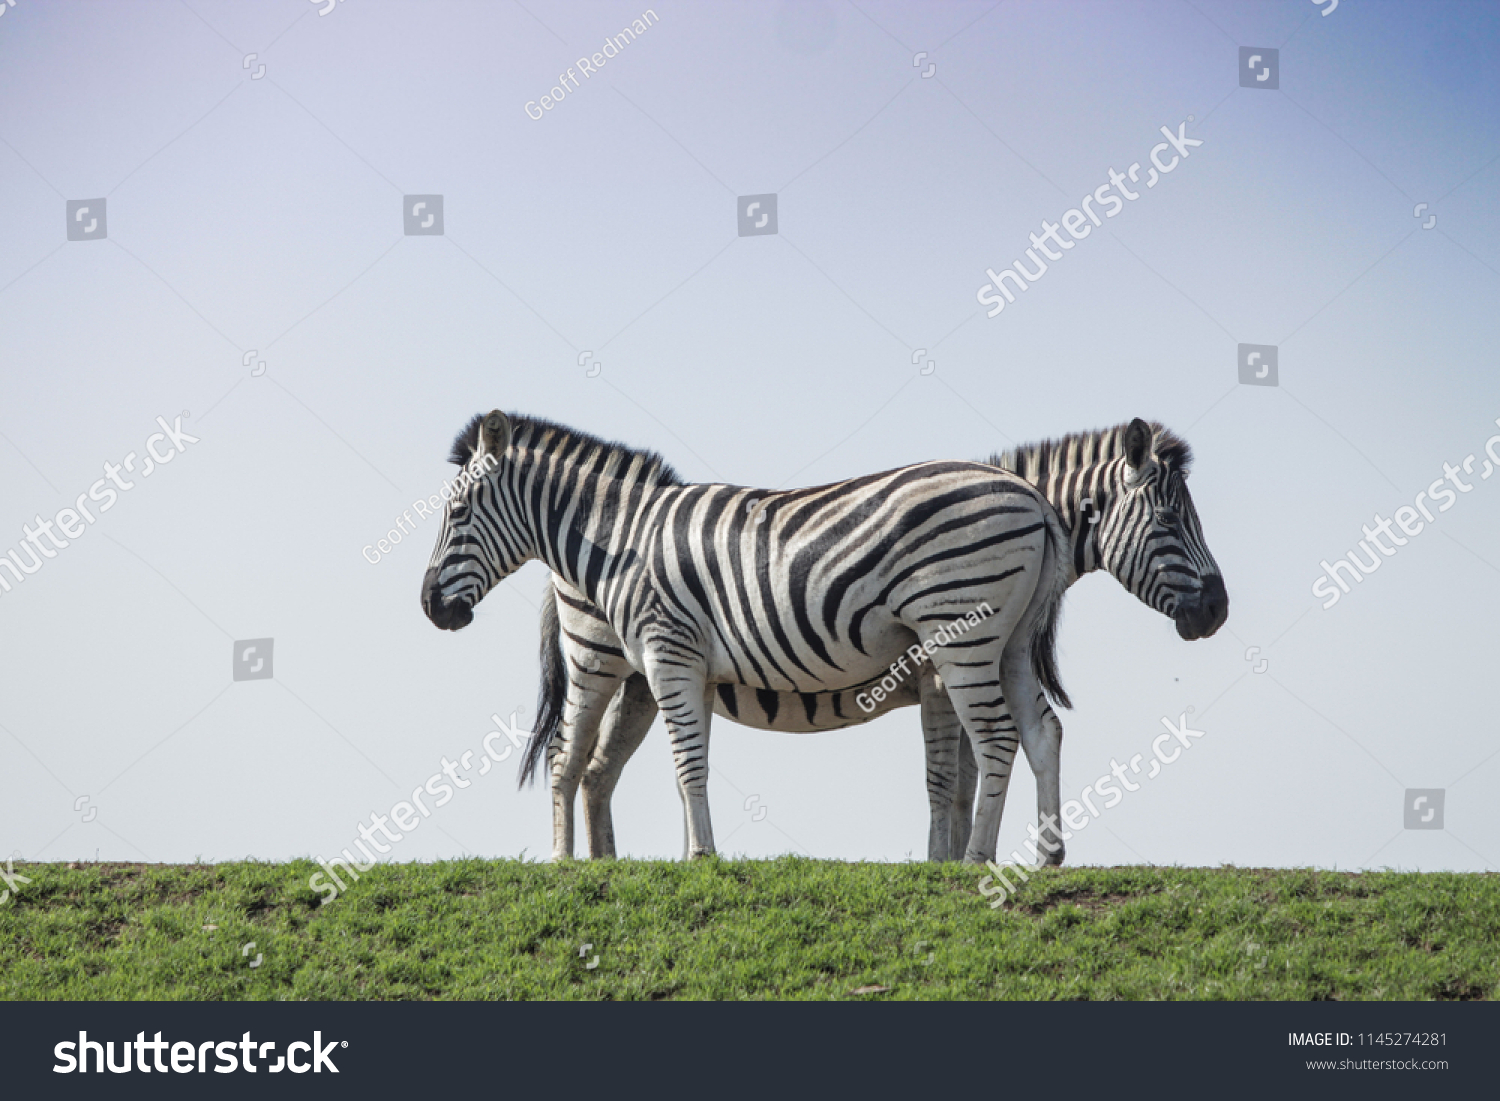 Two zebra graze together on the African plains as a way of camouflaging from predators  #1145274281